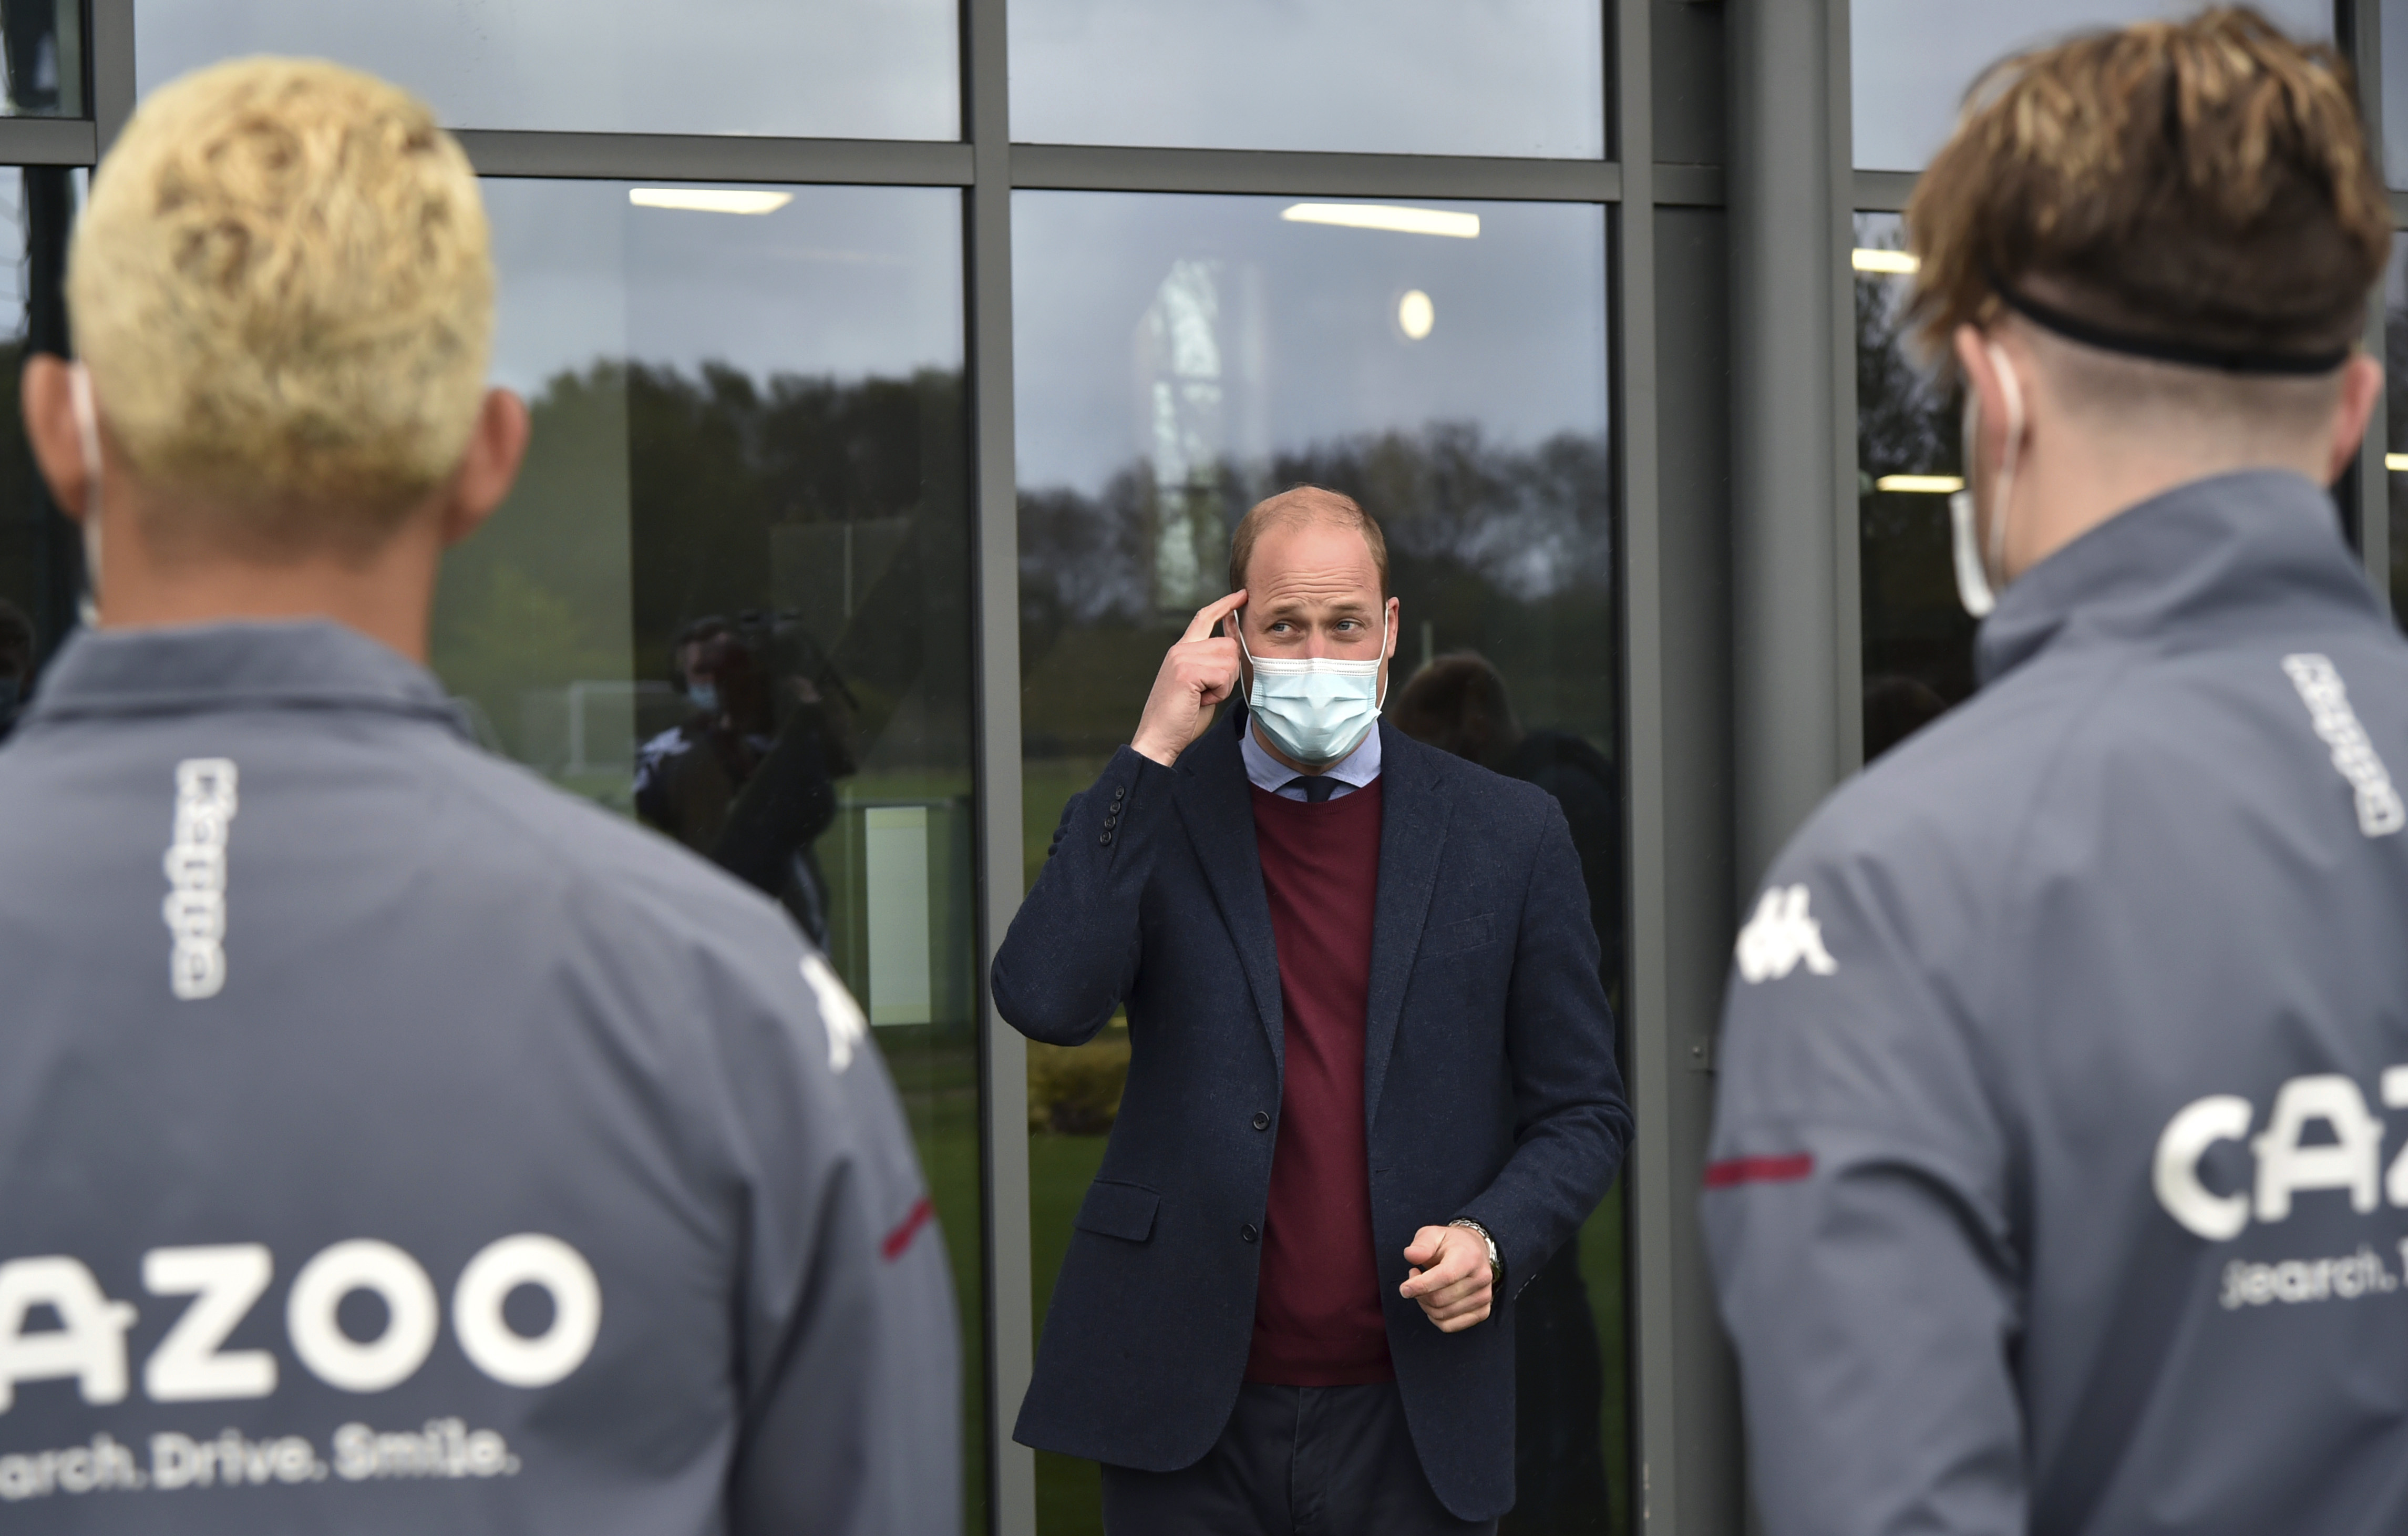 <p>The Duke of Cambridge speaks to Aston Villa players during a visit to Aston Villa's High Performance Centre at Bodymoor Heath, Warwickshire. Picture date: Tuesday May 4, 2021.</p>